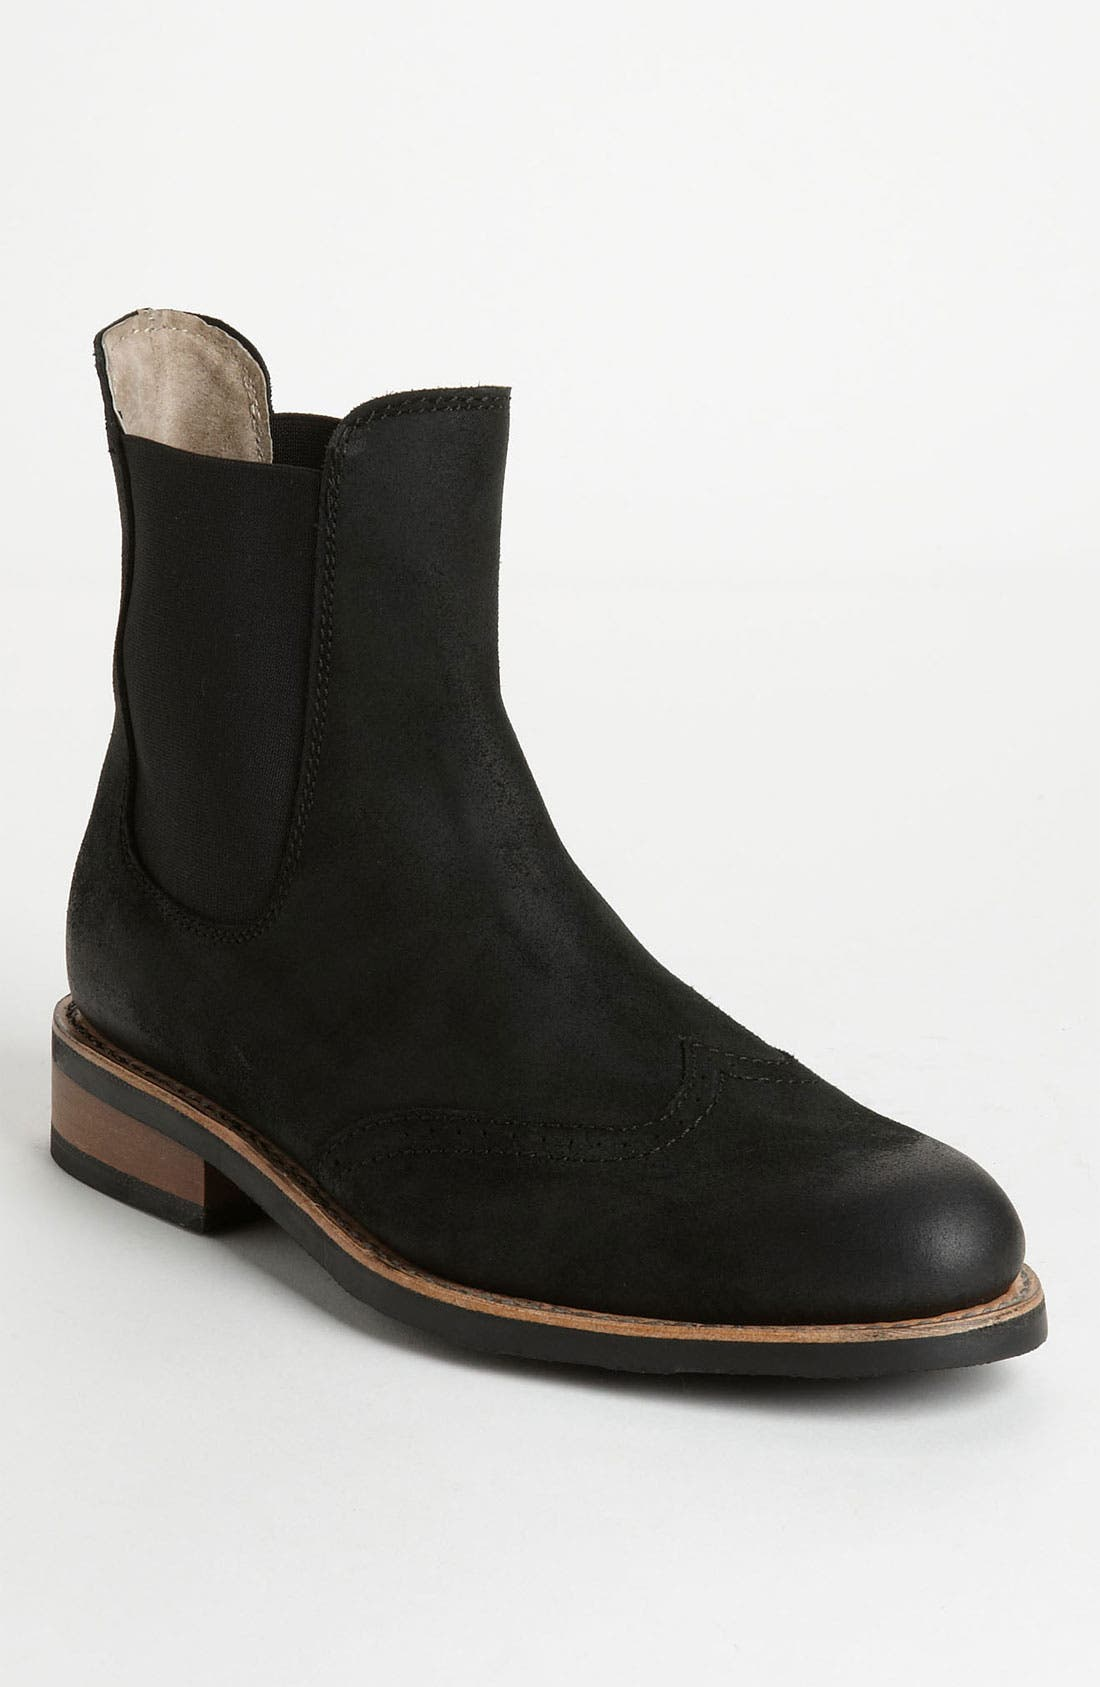 Alternate Image 1 Selected - J.D. Fisk 'Neal' Wingtip Chelsea Boot